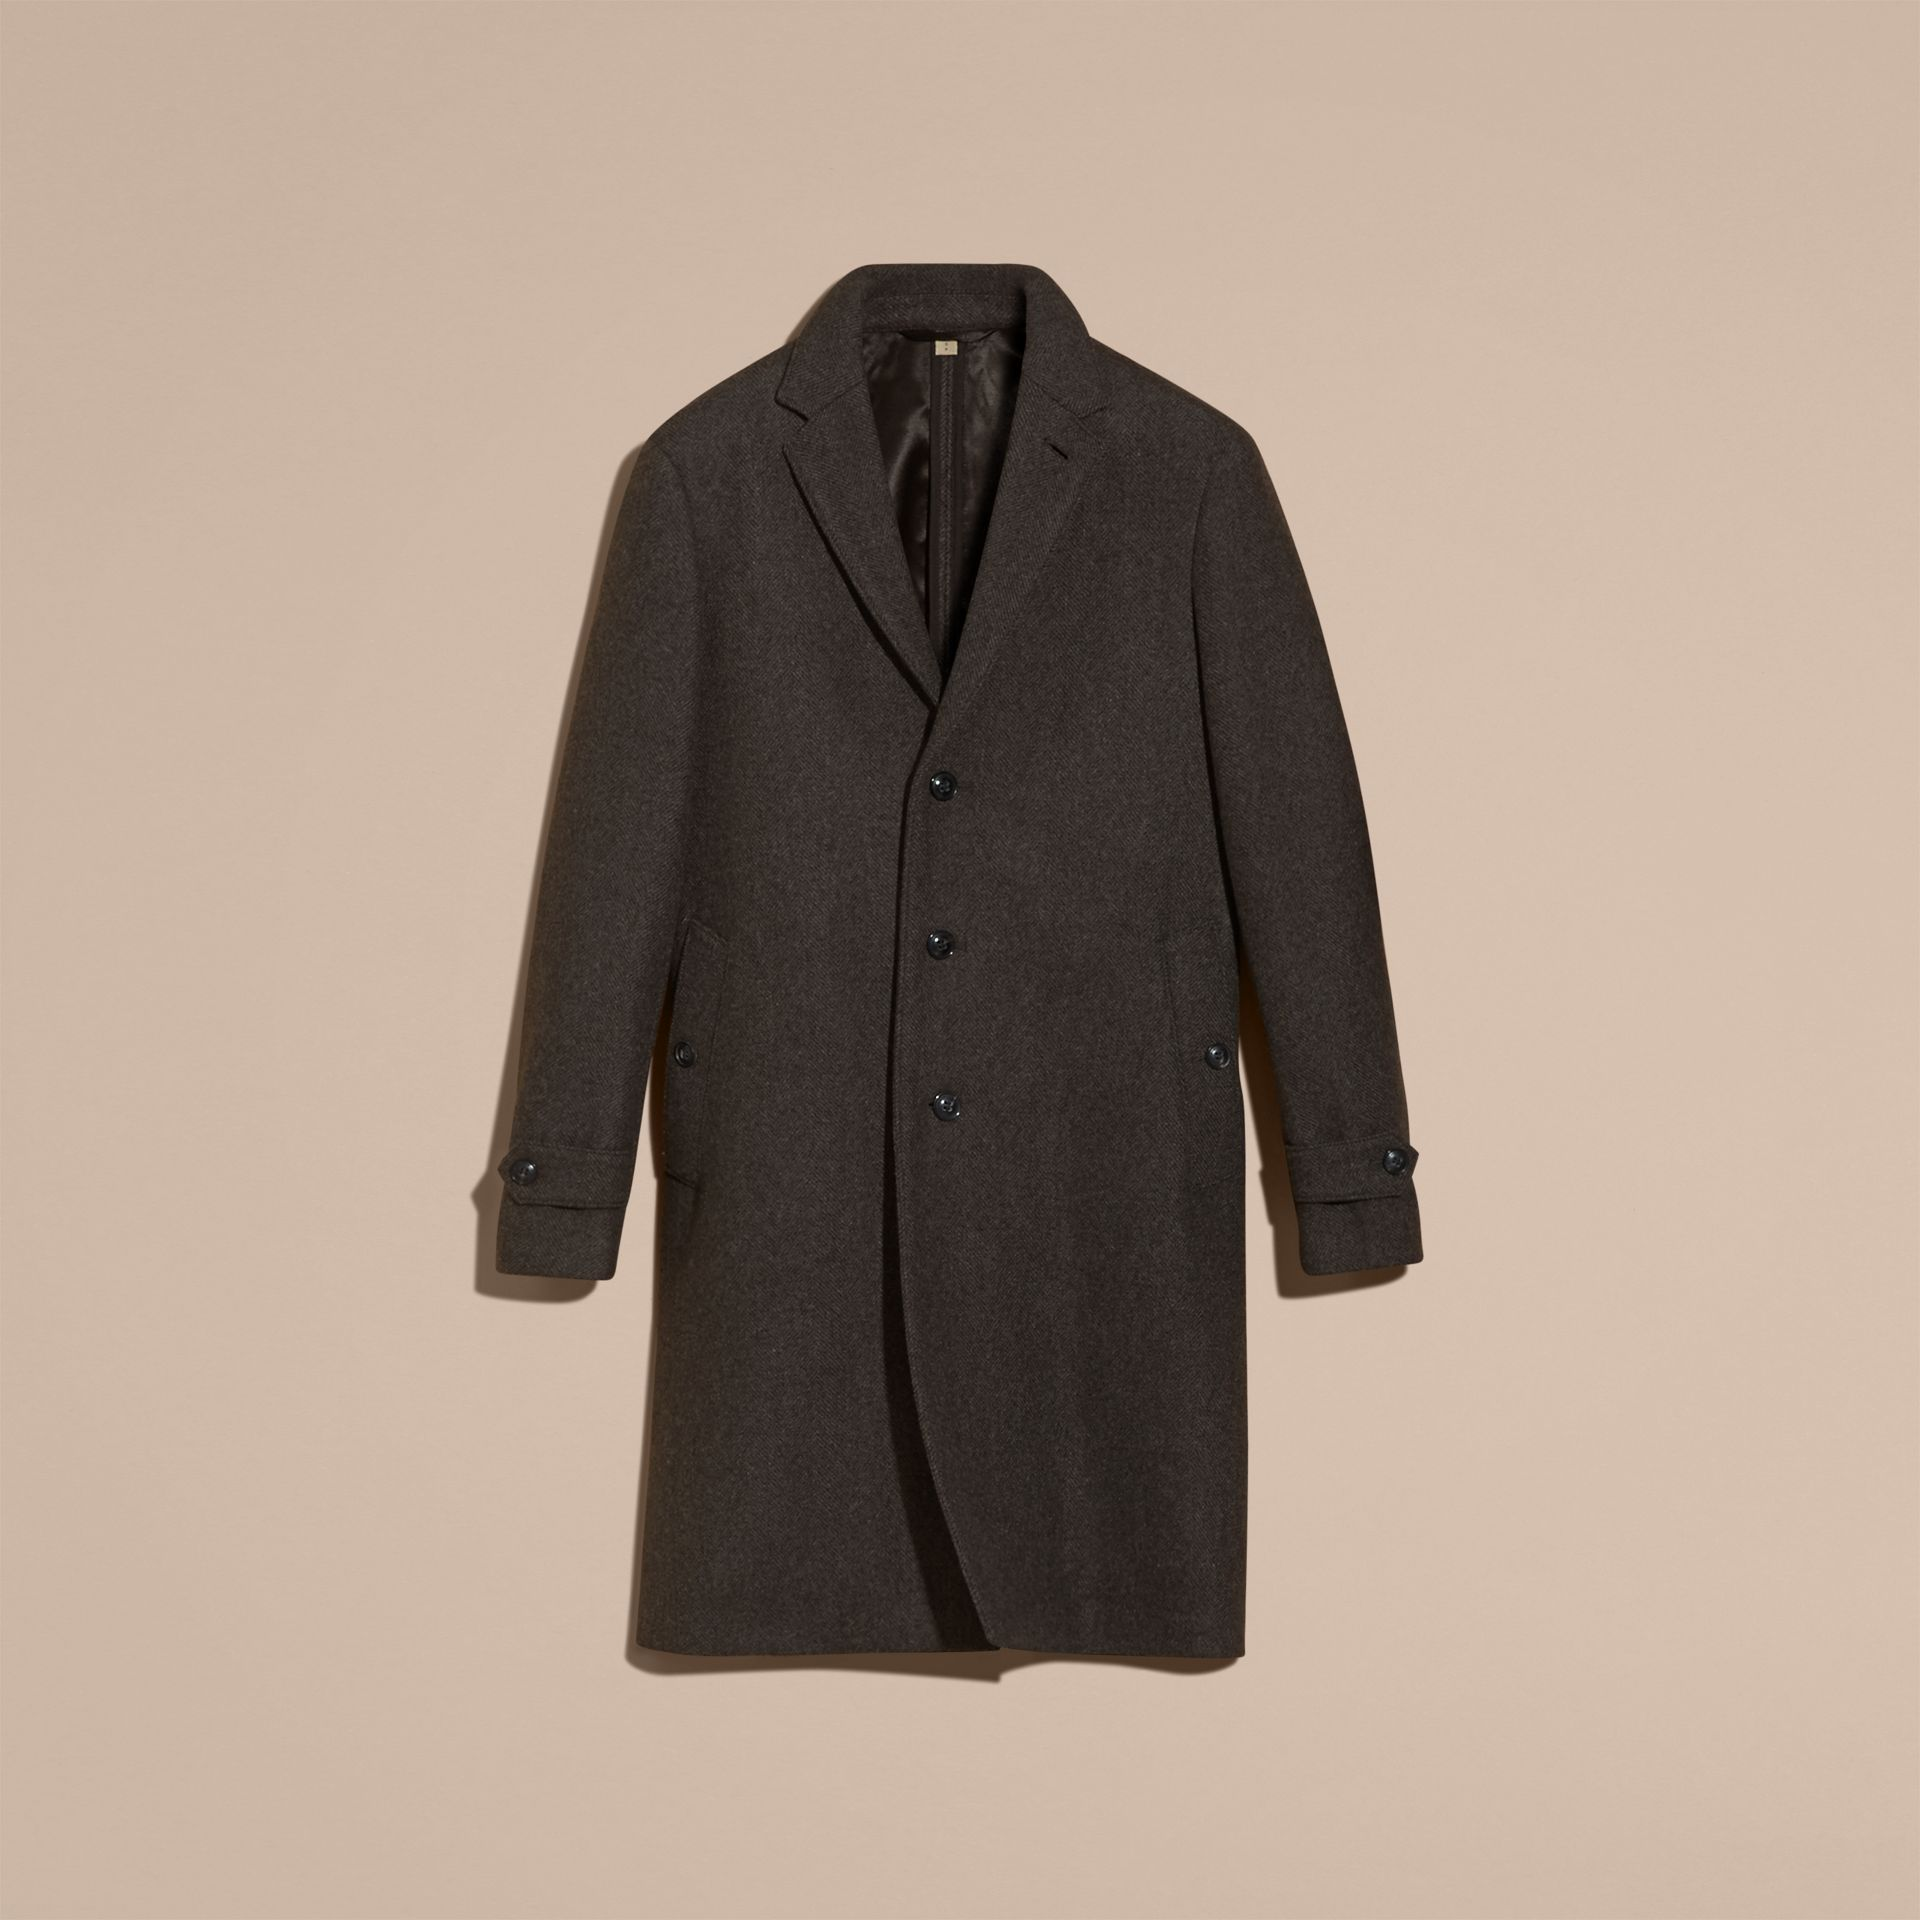 Charcoal melange Single-breasted Wool Blend Tailored Coat - gallery image 4